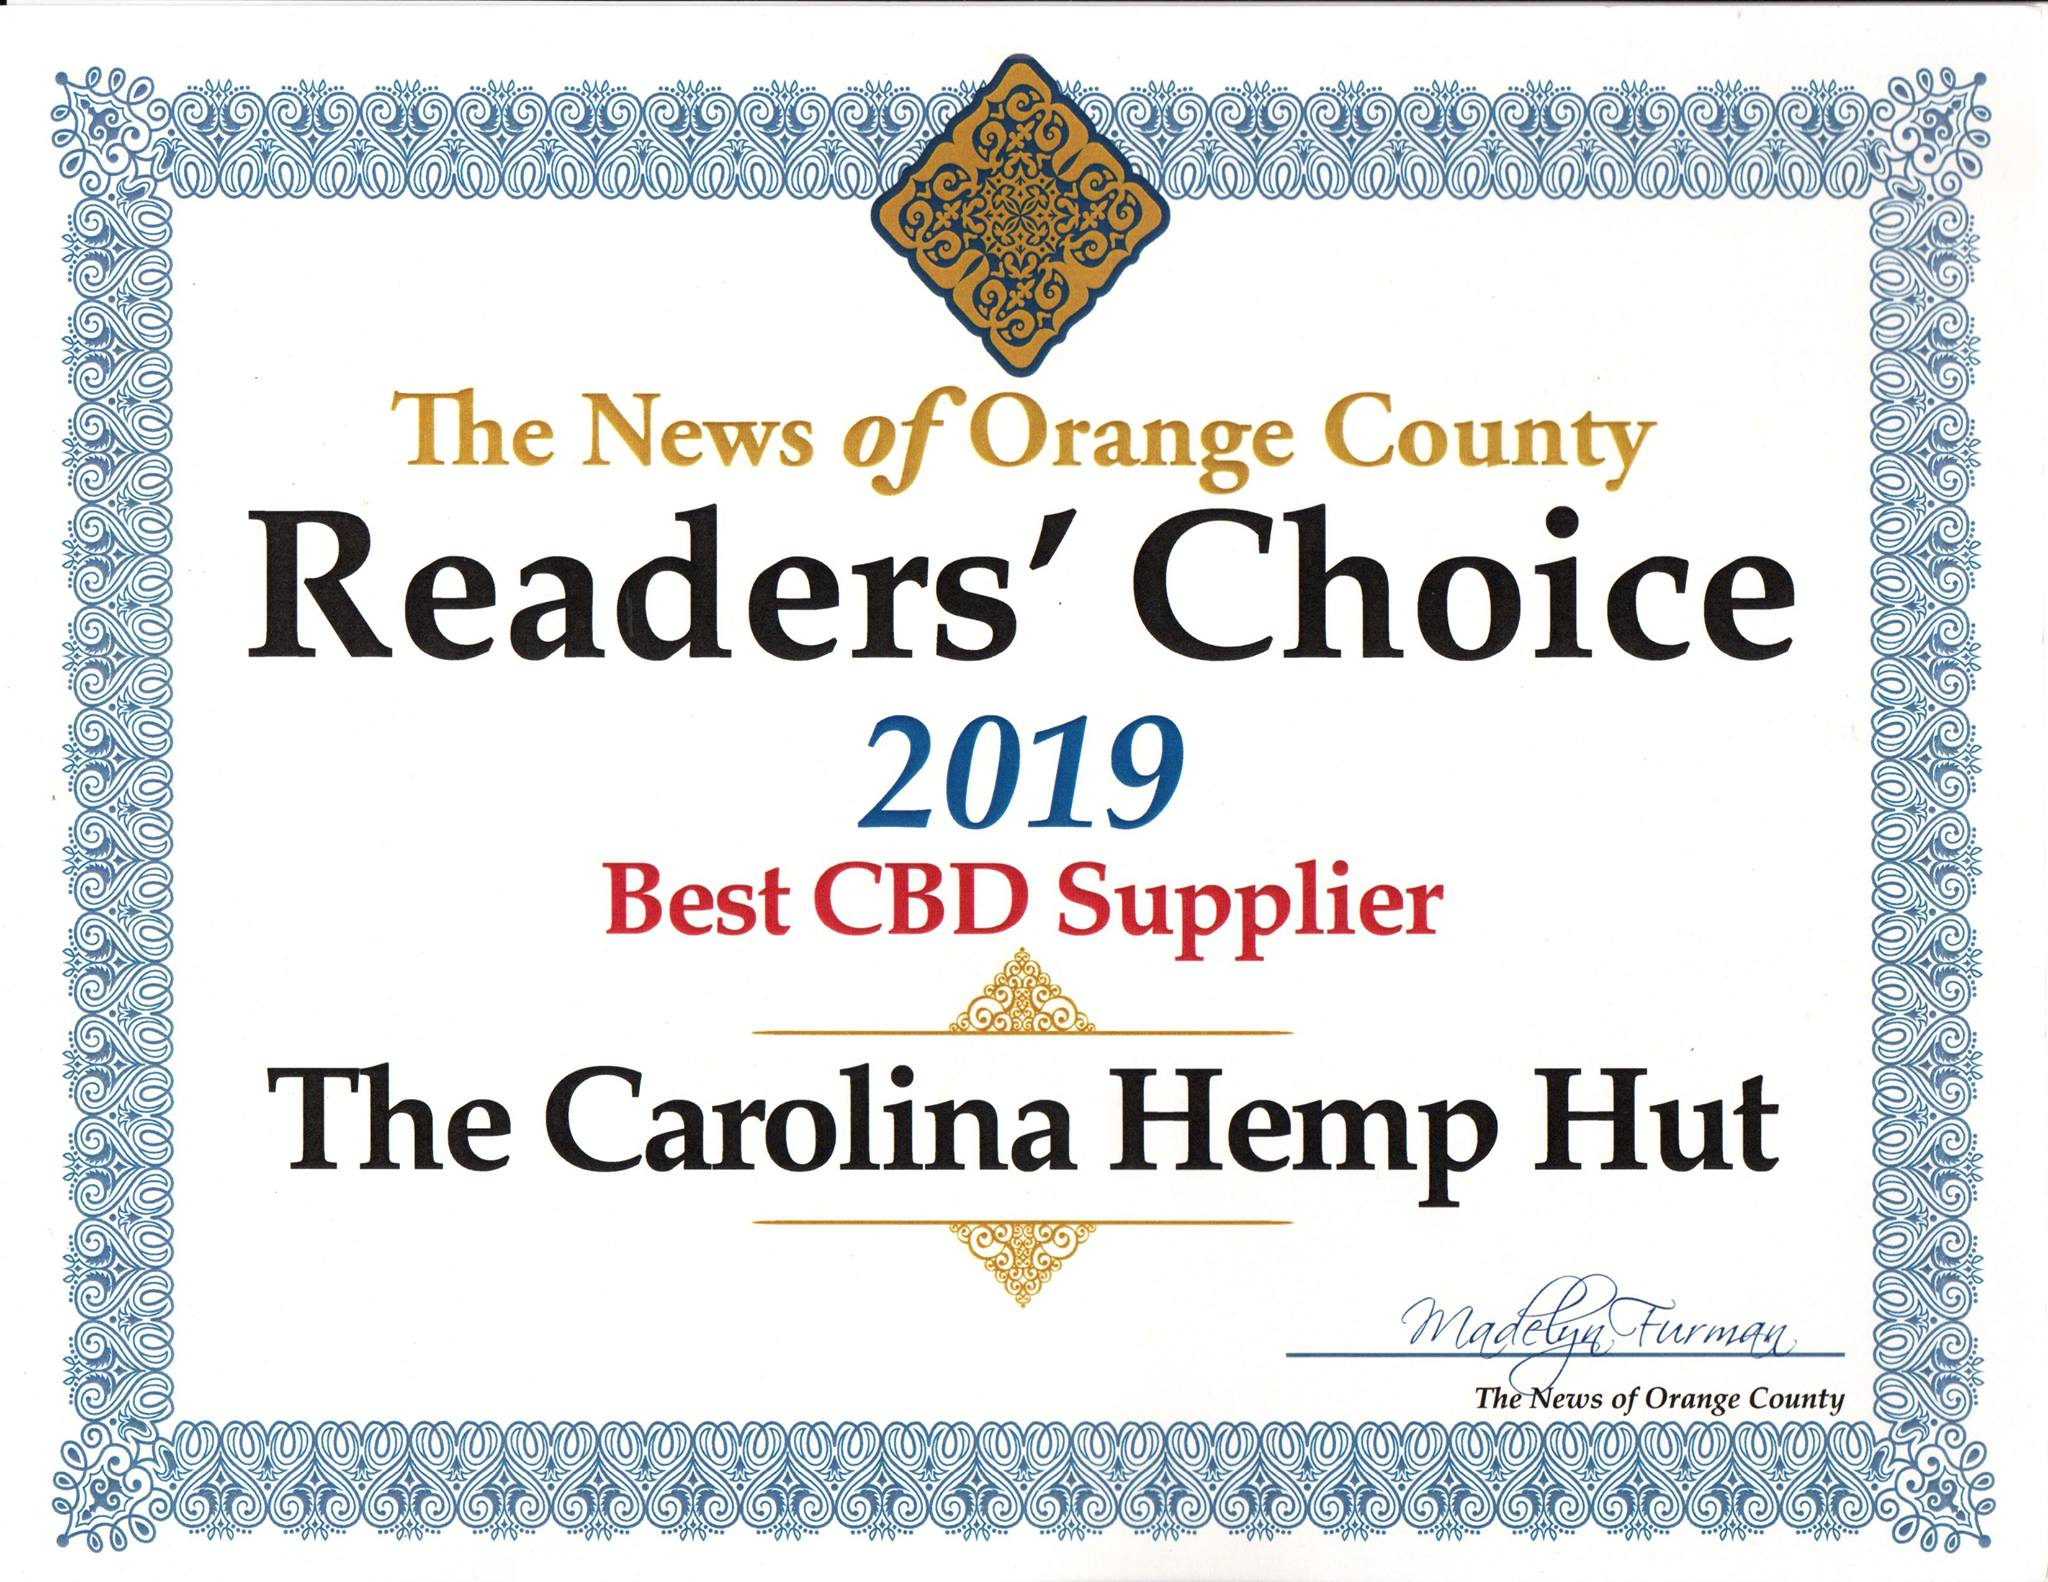 The News of Orange County has selected Carolina Hemp Hut as the Best CBD Supplier